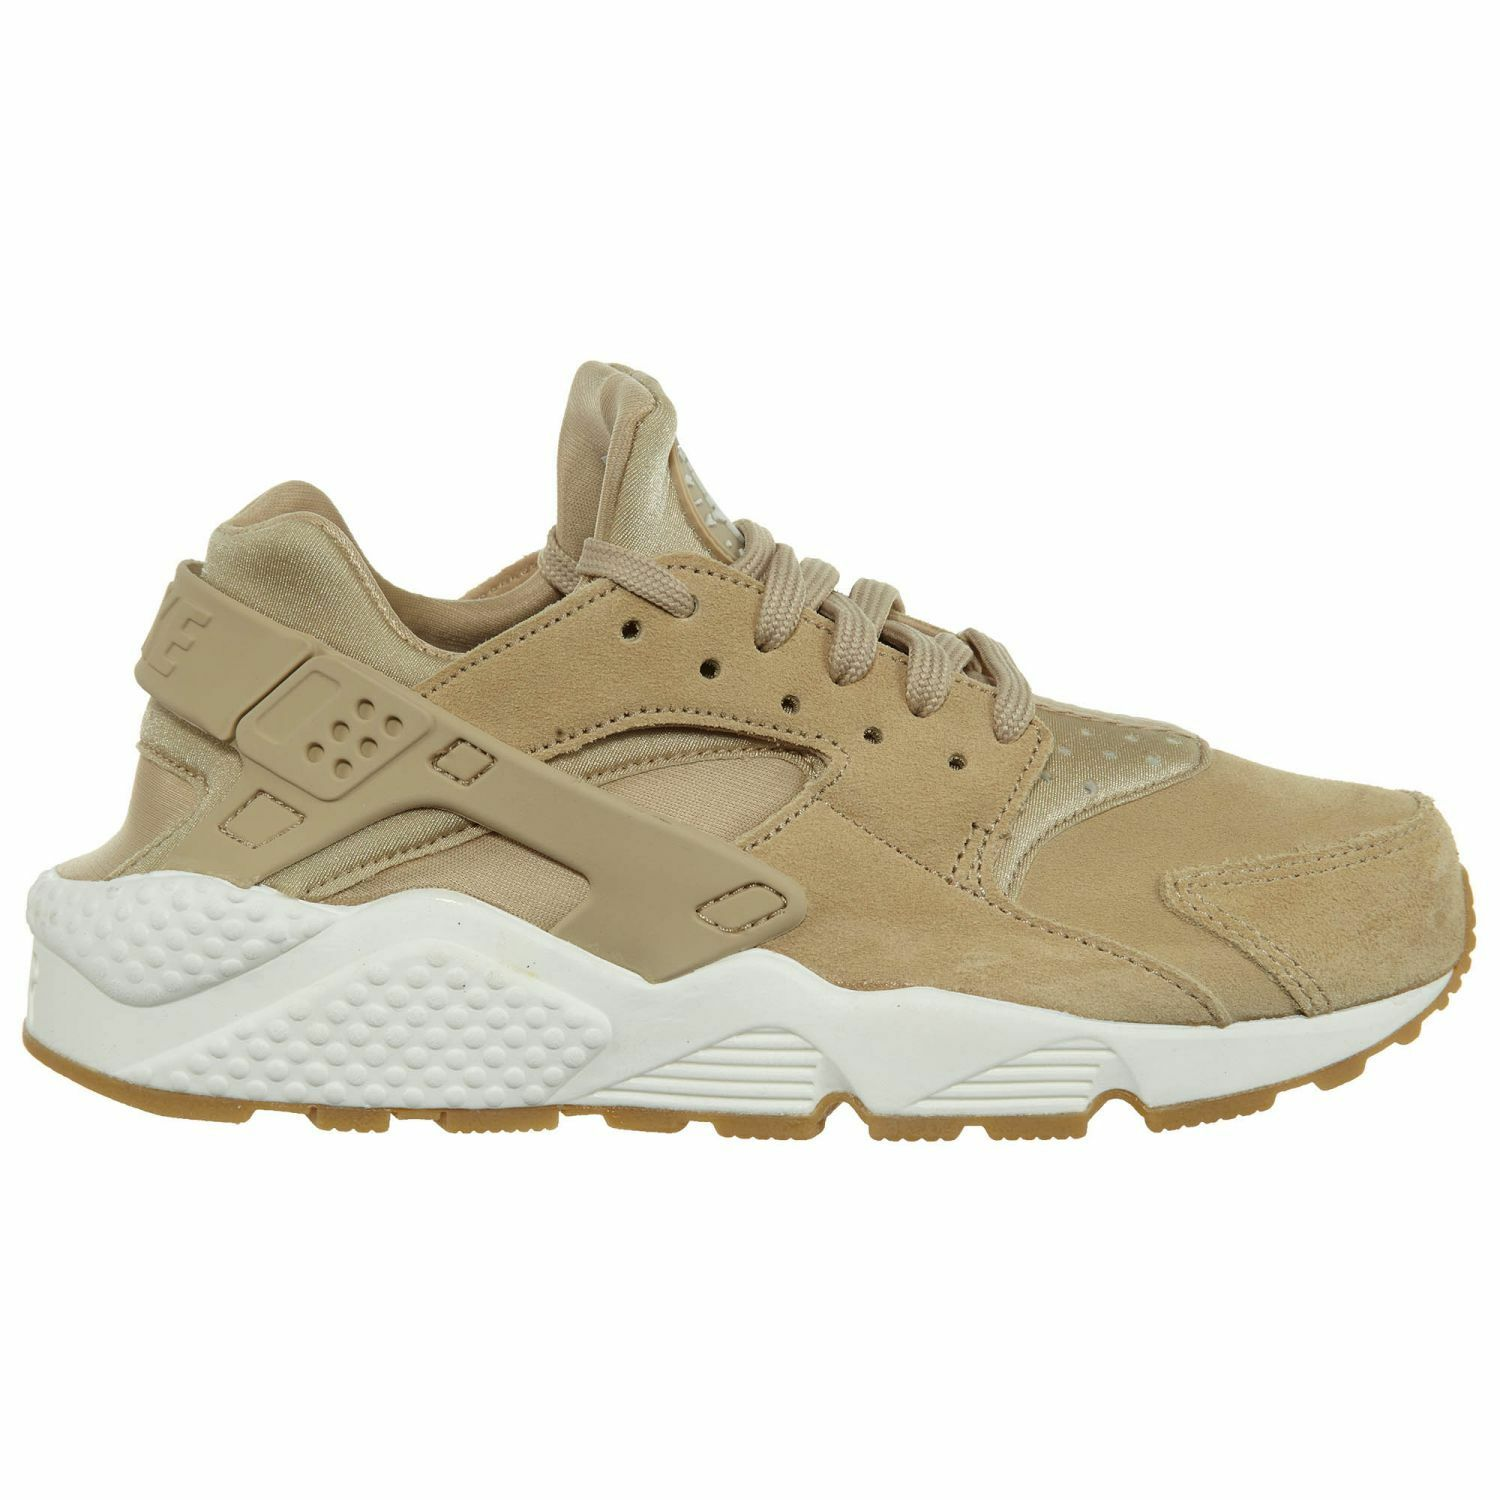 Nike Air Huarache Run SD Womens Mushroom Bone Running Shoes Comfortable